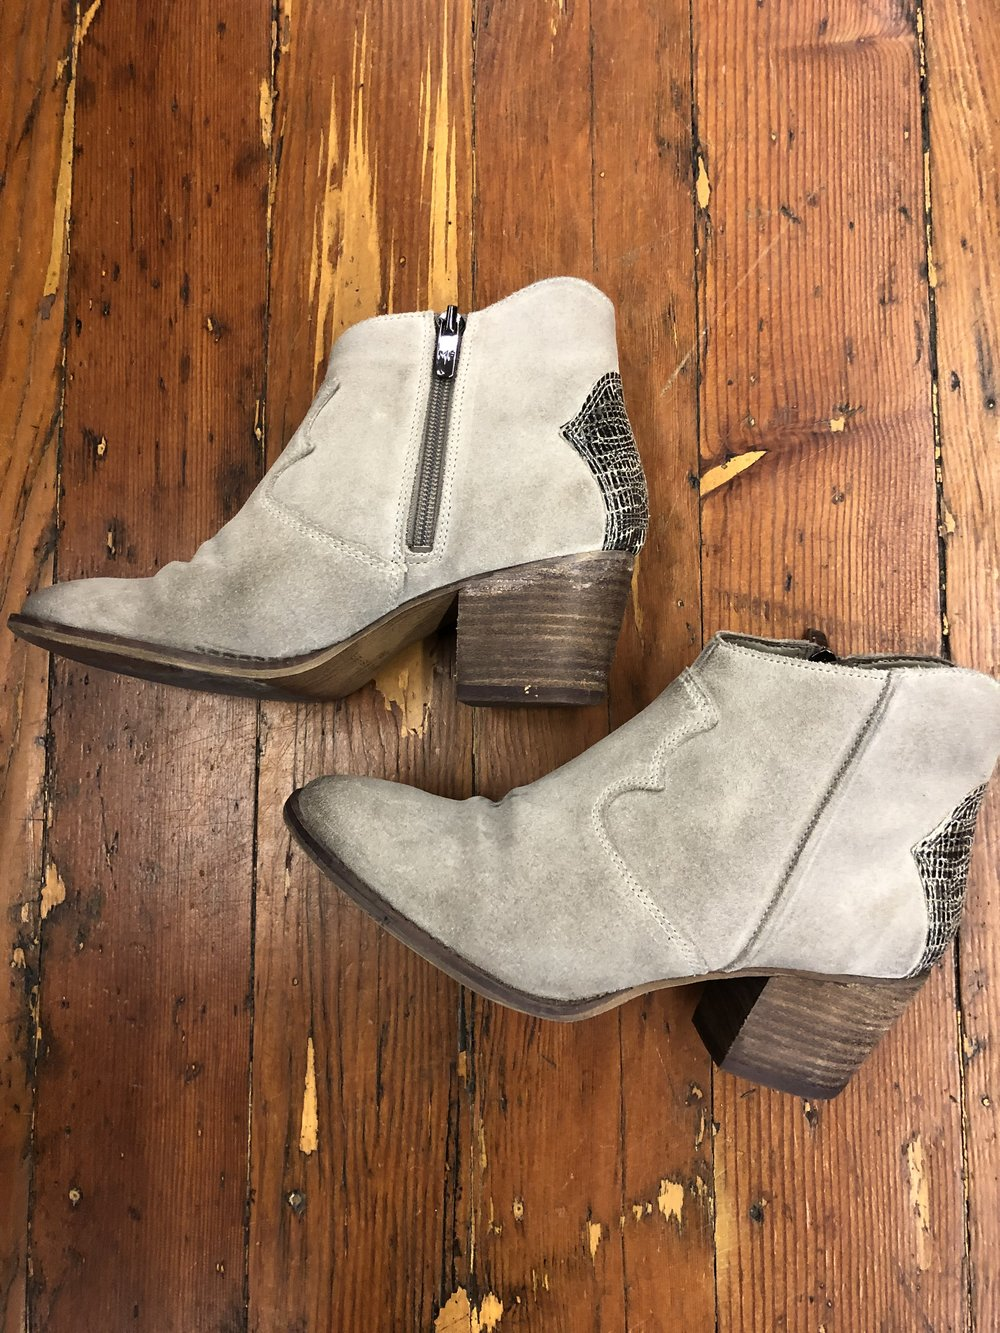 Marc Fisher Bootie - 8 - $24.79